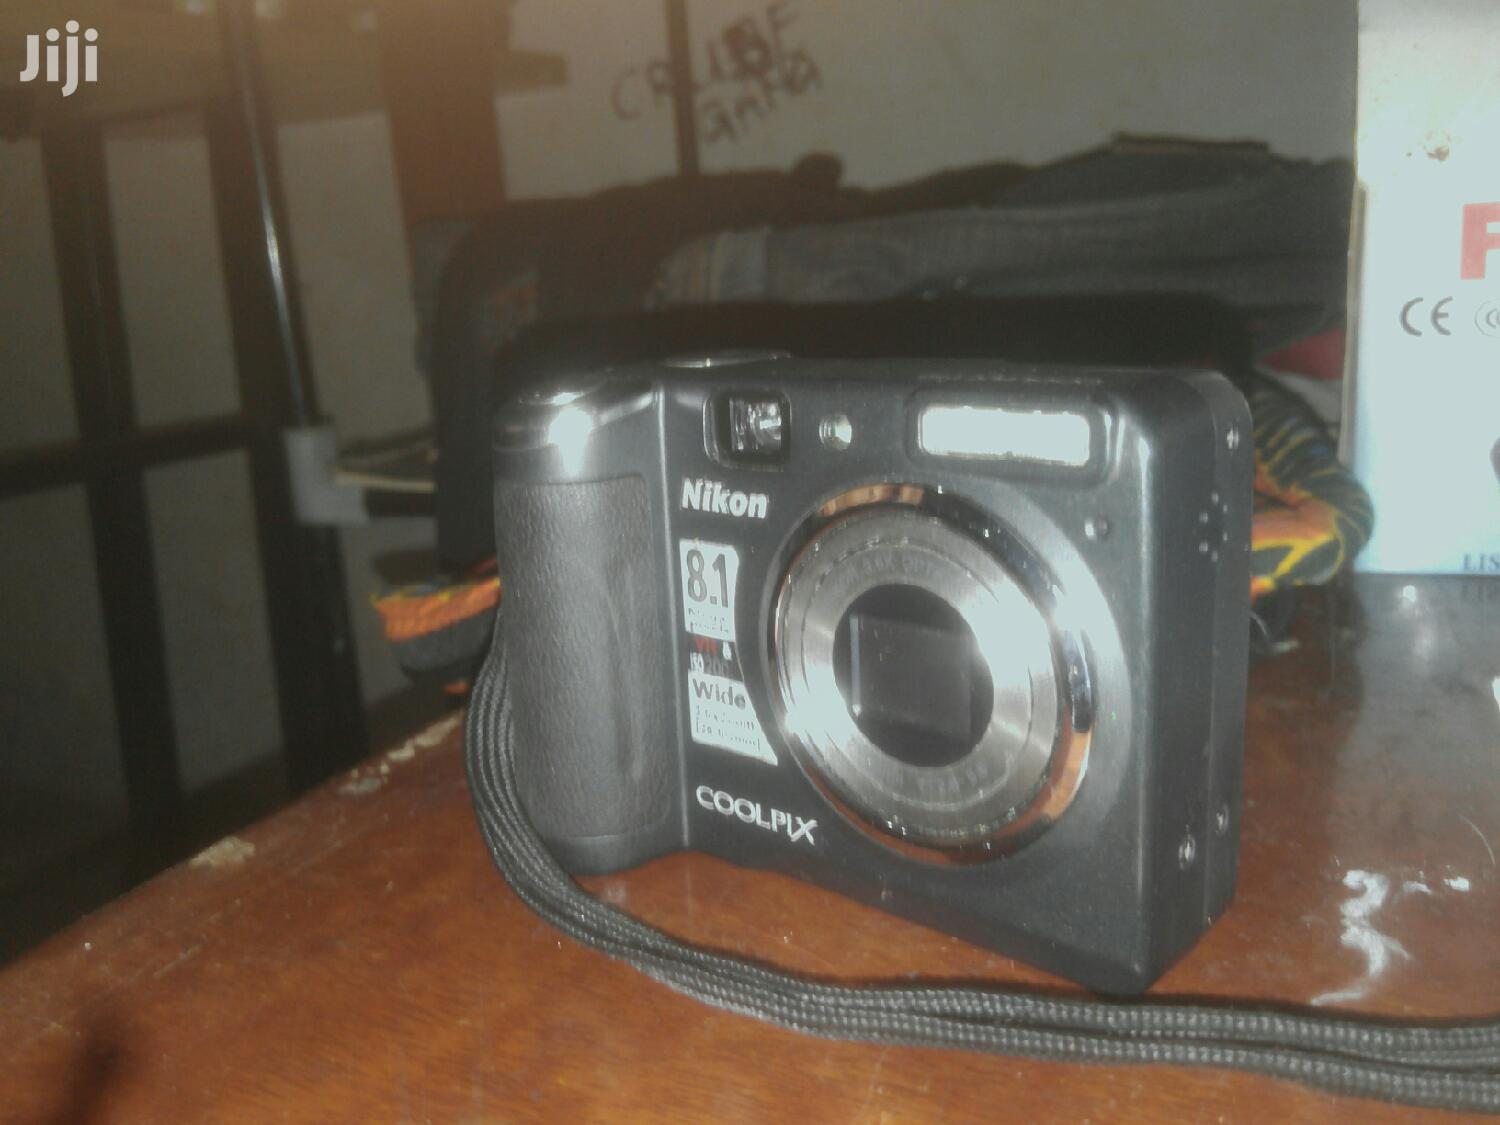 Its a Nikon Digital Camera